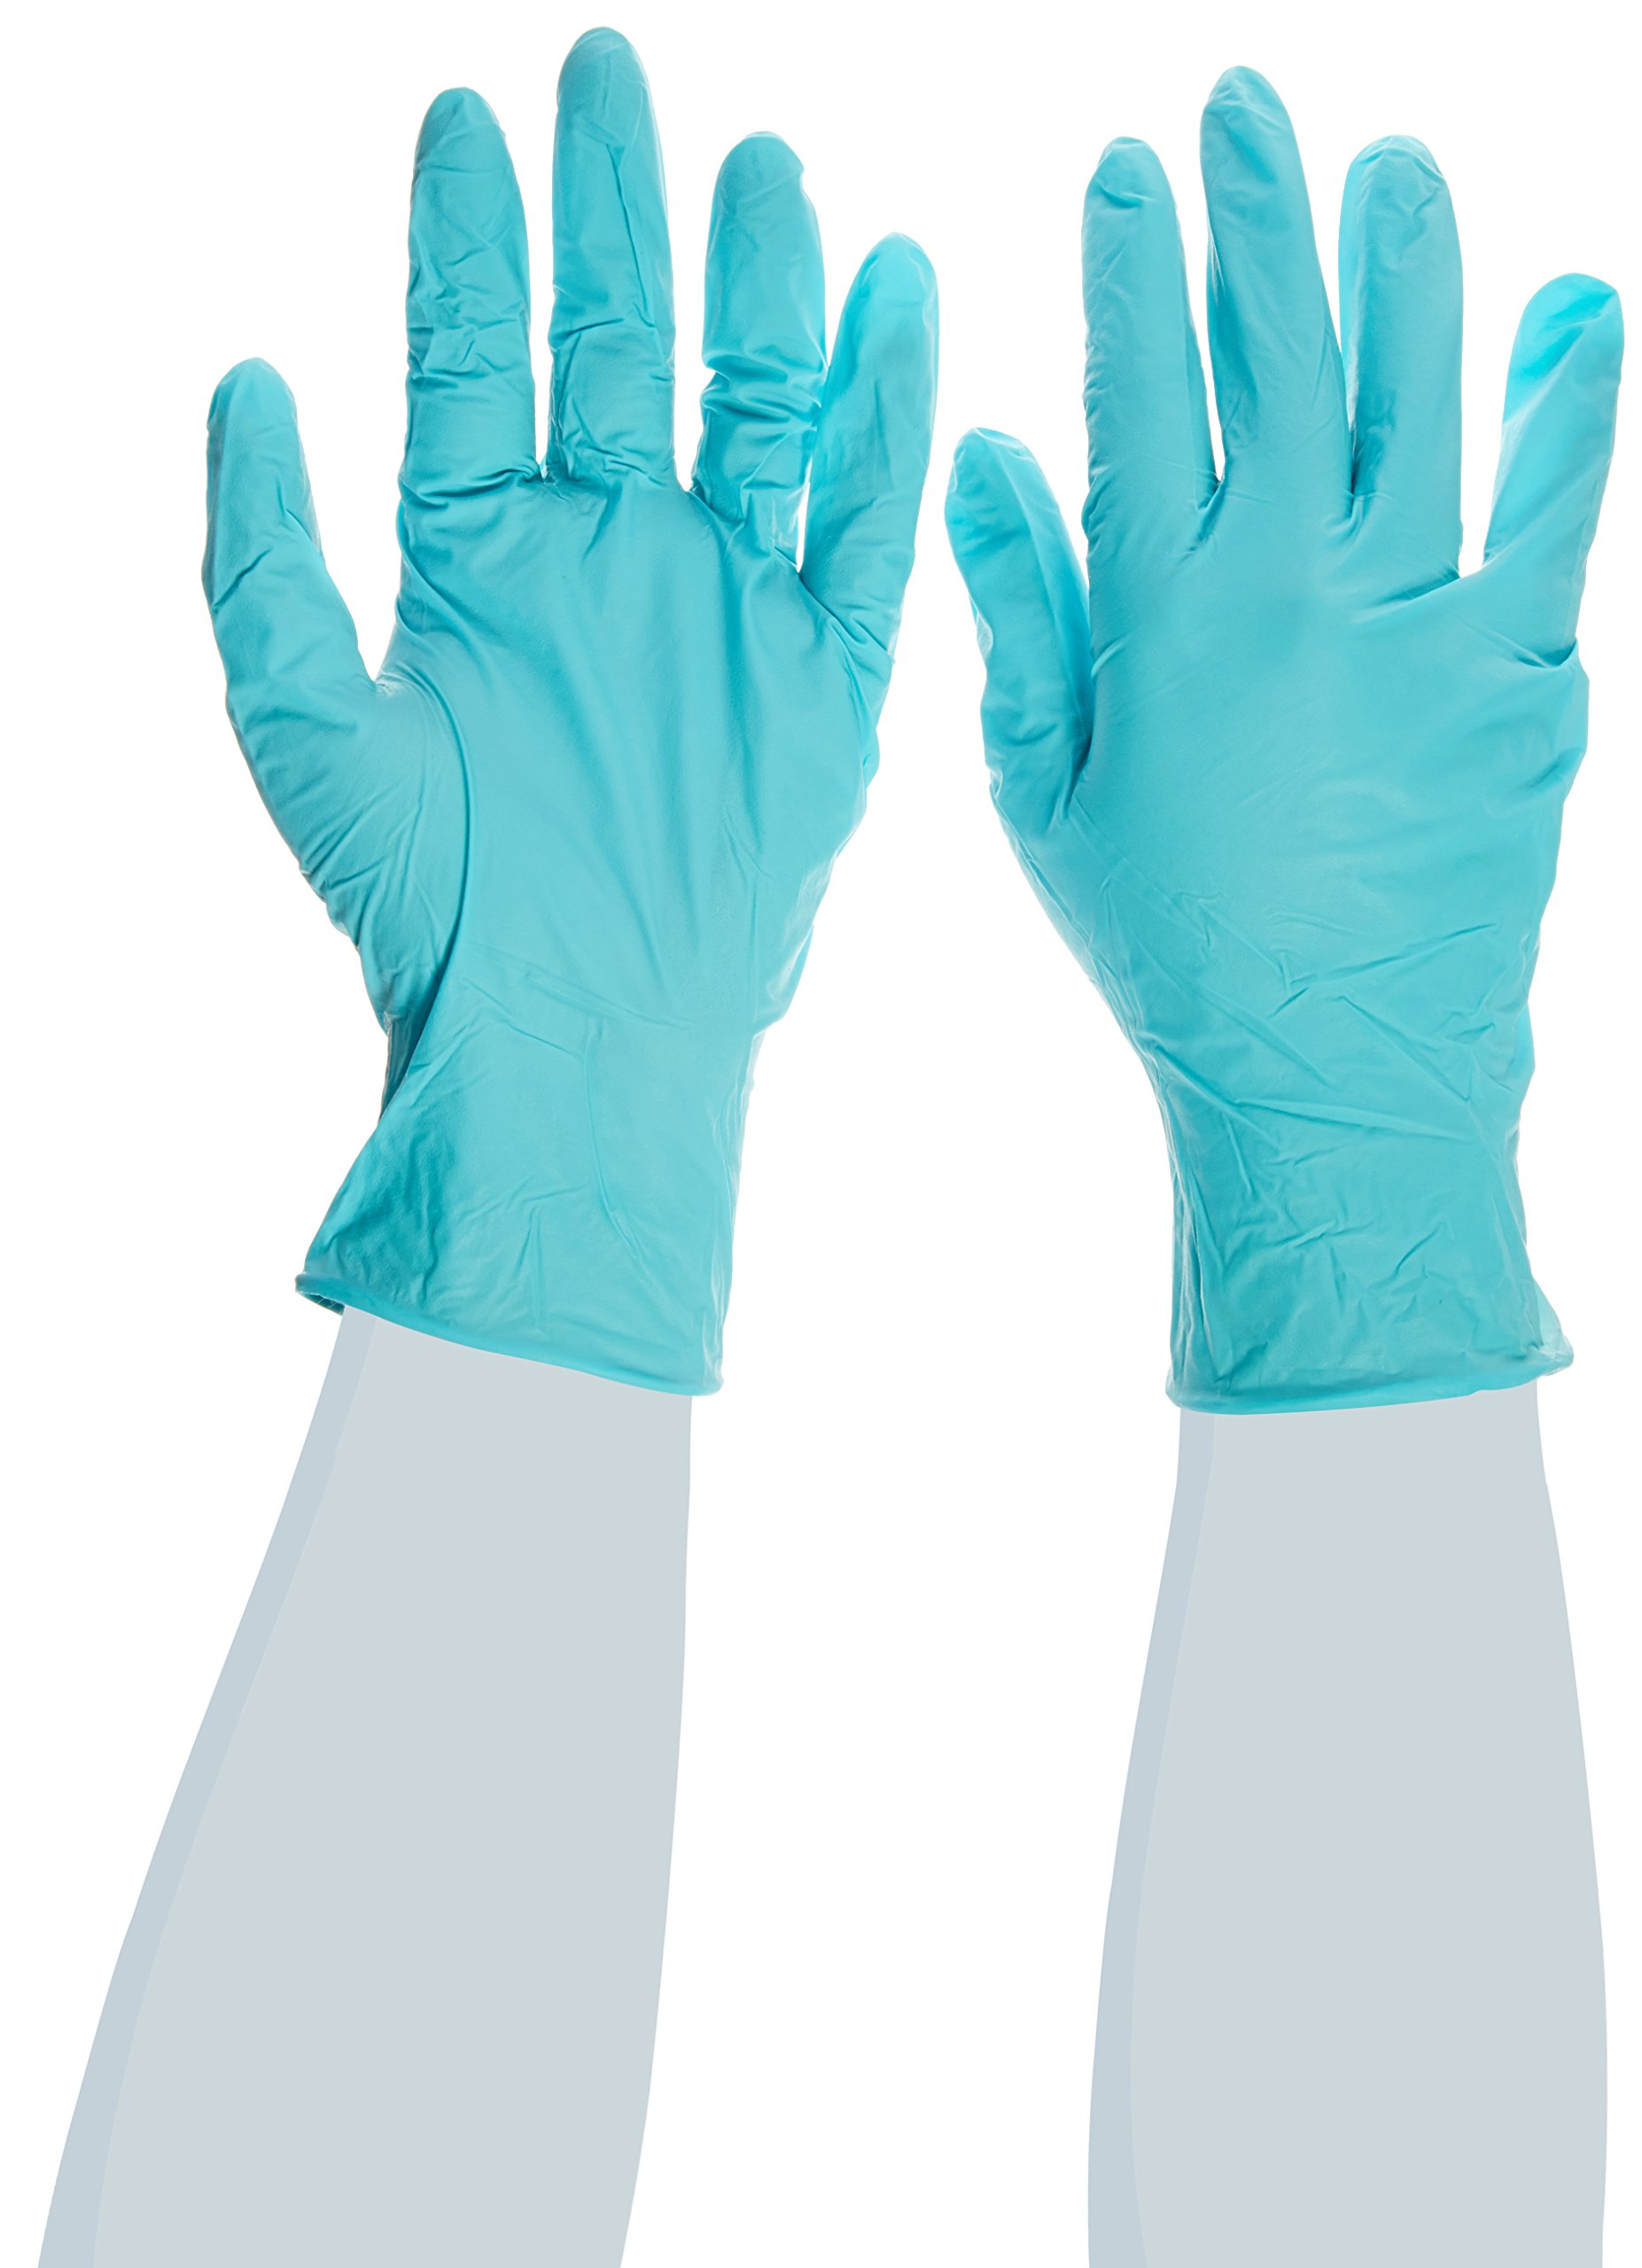 High Five Aloe Sense N963 Nitrile Exam Glove, Large (Case of 10)